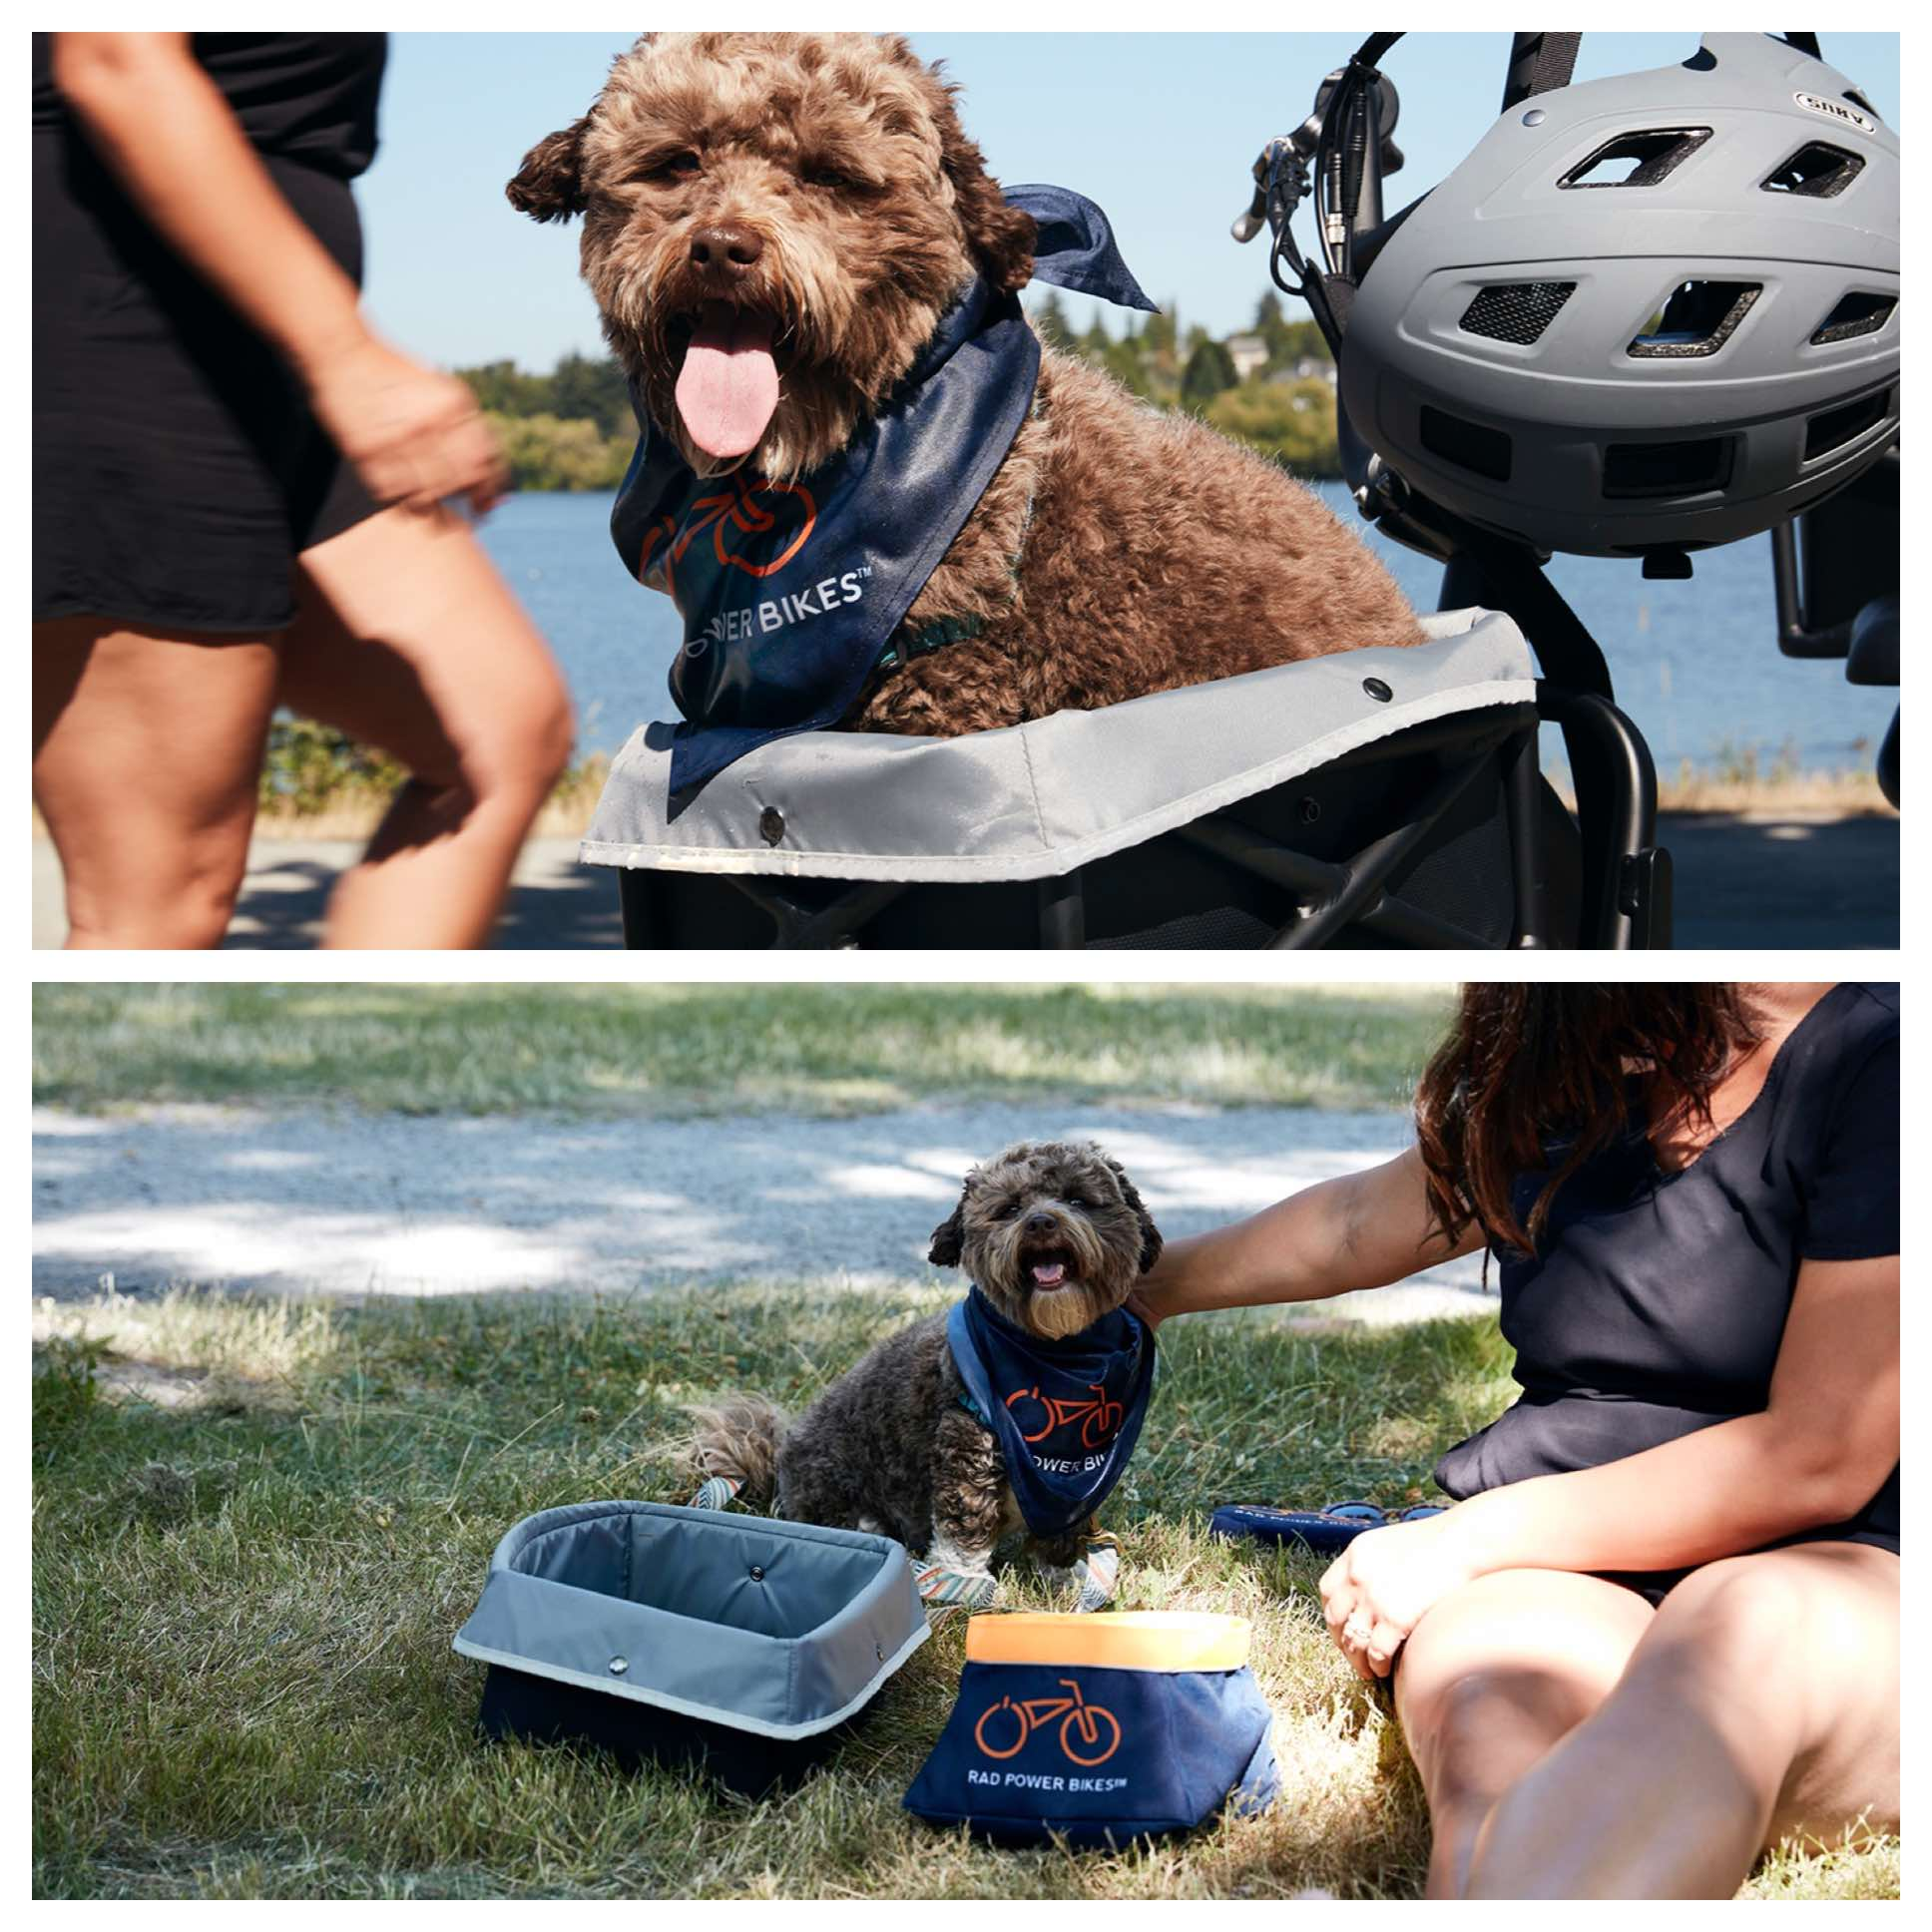 Two pictures of small dog, one where he is nestled in Rad's new pet carrier and the other where he is by the Rad Power Bikes portable water dish.